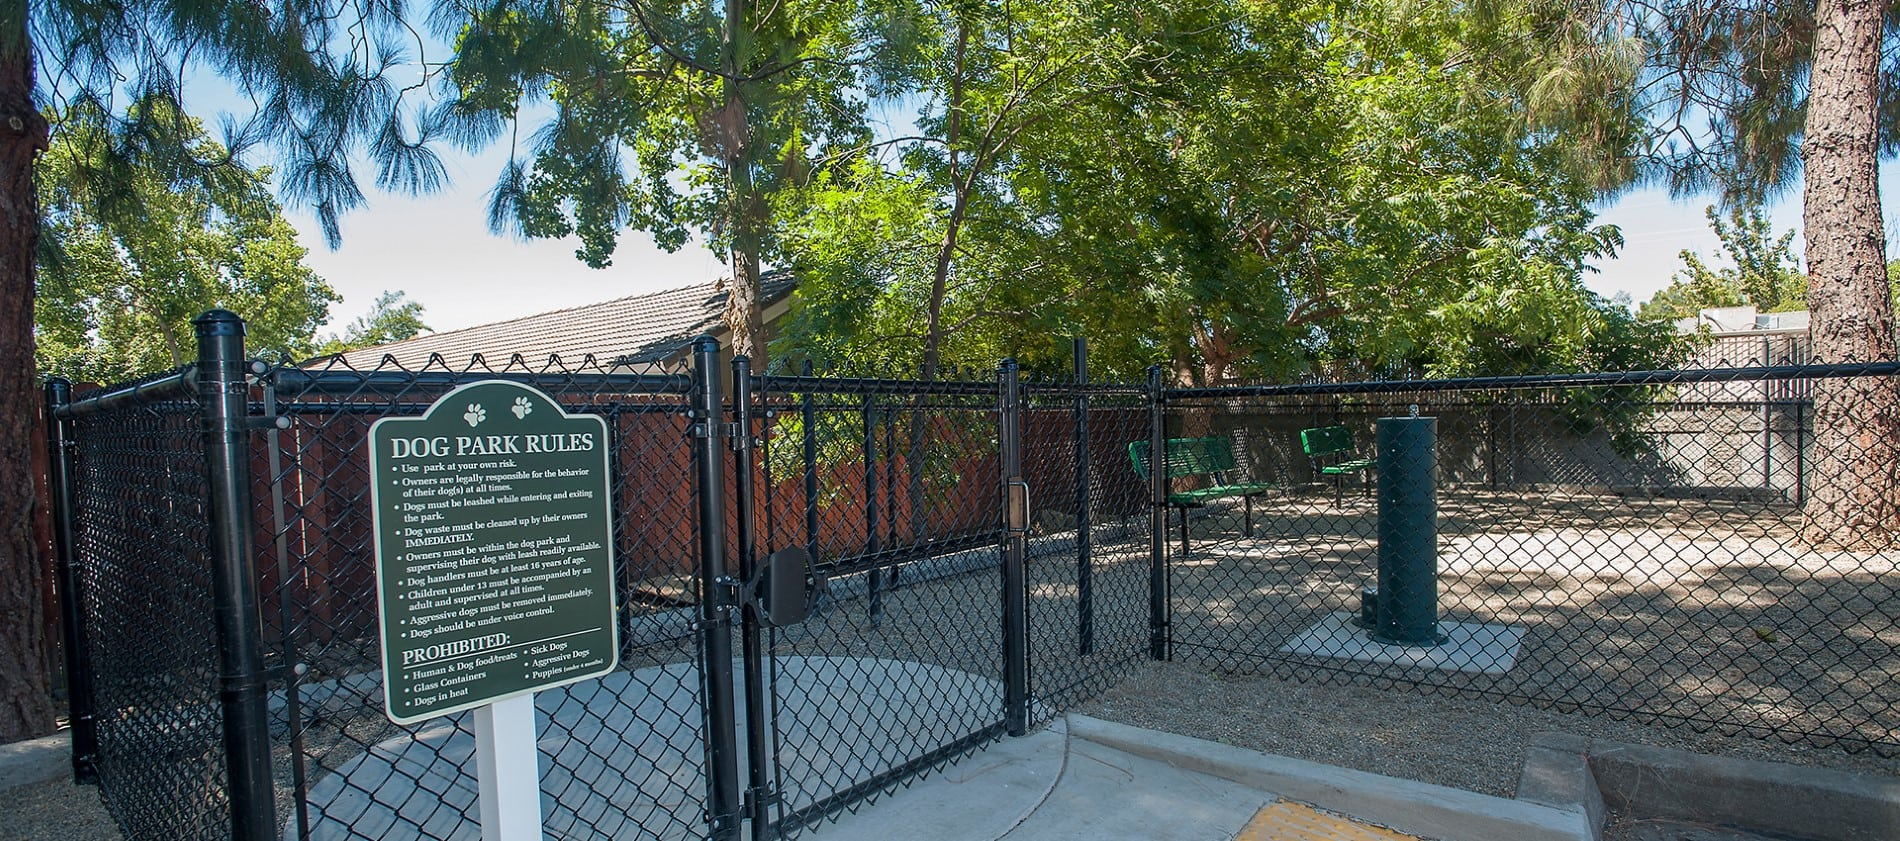 Dog park at Reserve at Capital Center Apartment Homes in Rancho Cordova, CA